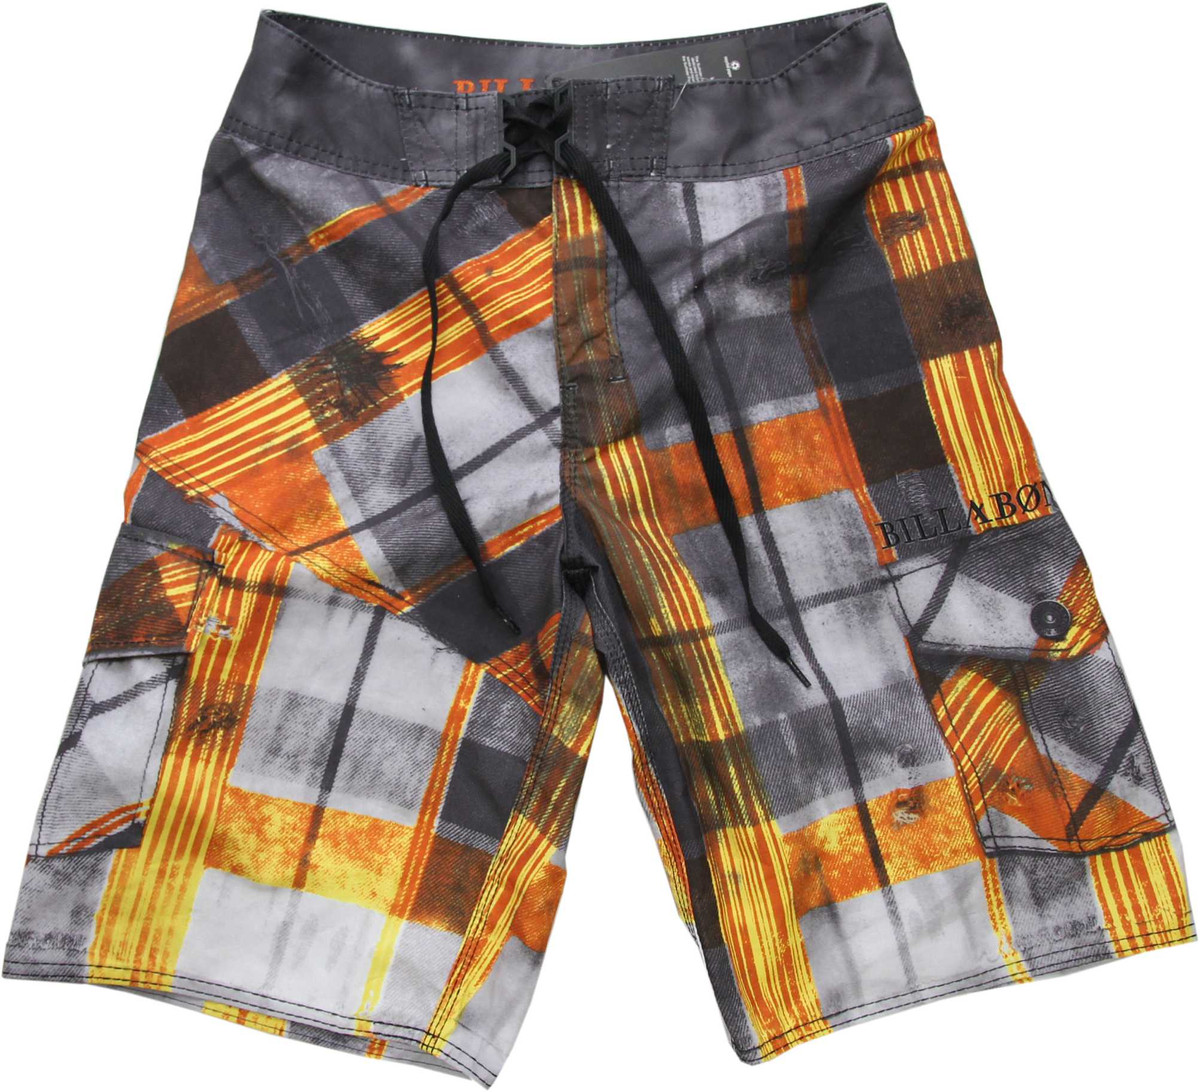 2fc95e2b00db Billabong Surfer Board Short - Swim Surf - Boardshorts Swim Shorts 001